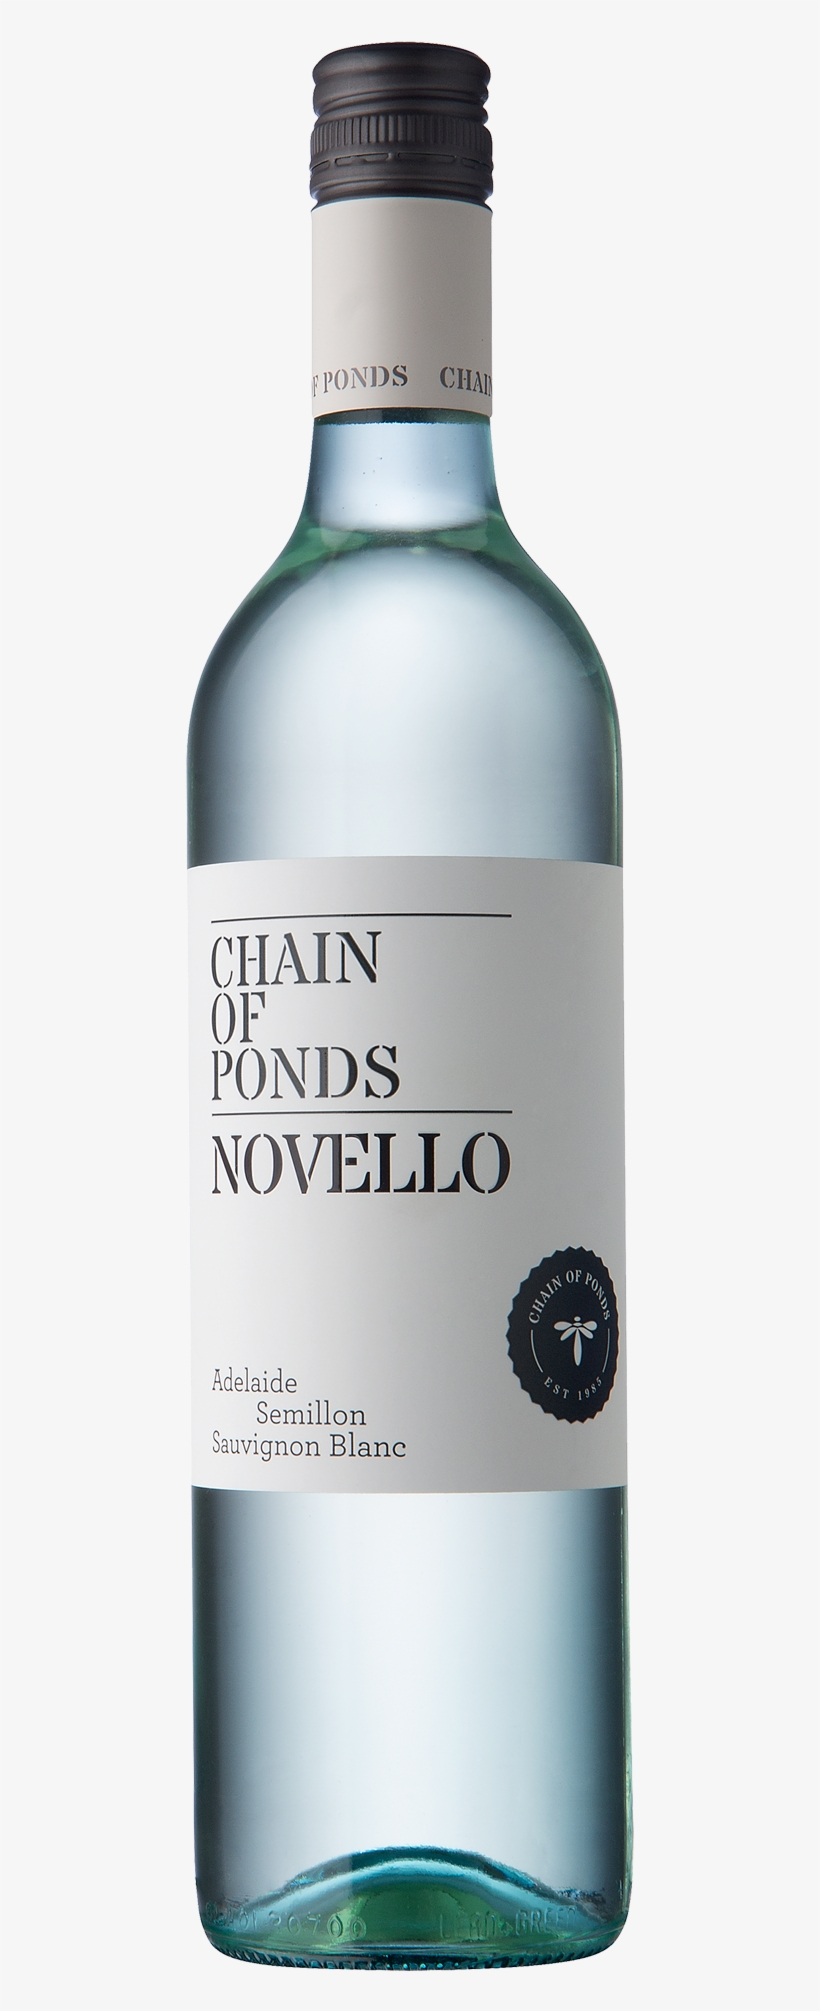 Blend Of The Lifted Aromatics Of The Sauv Blanc And - Wine Bottle, transparent png #9795878